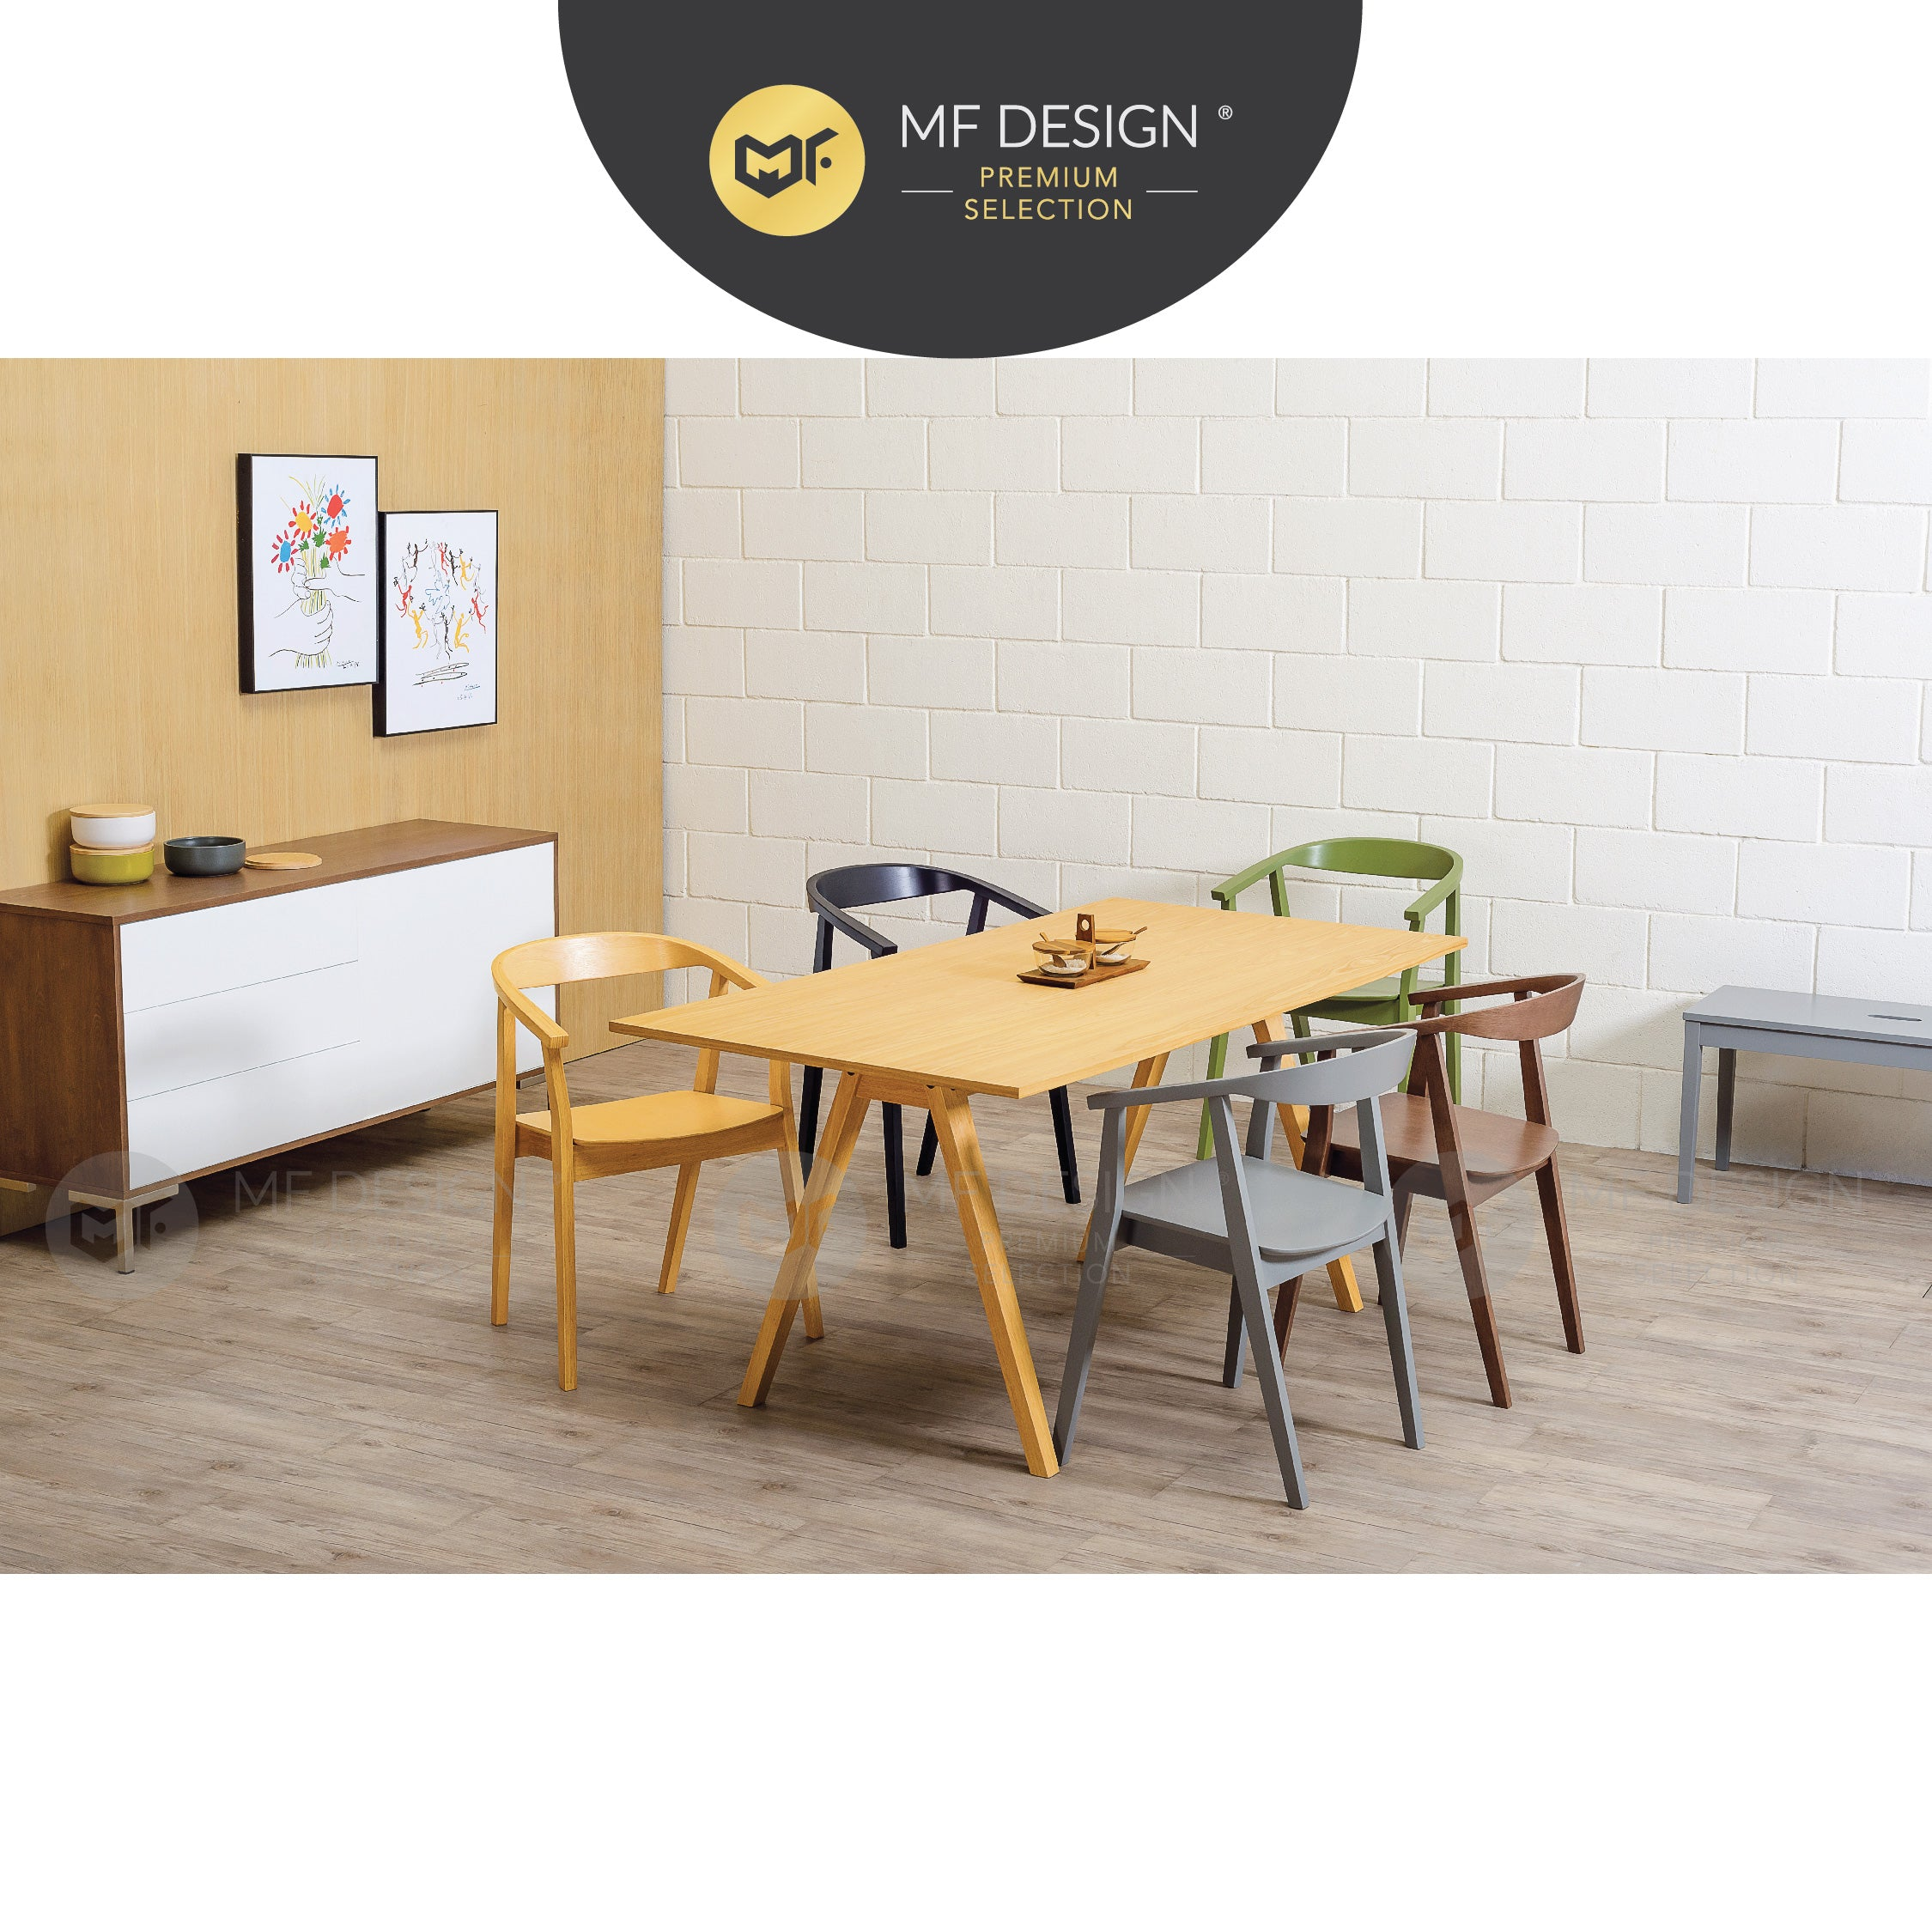 MFD Premium Geraldine Dining Chair / Wooden Chair / Solid Rubber Wood / Kerusi Makan Kayu Getah / Living Room